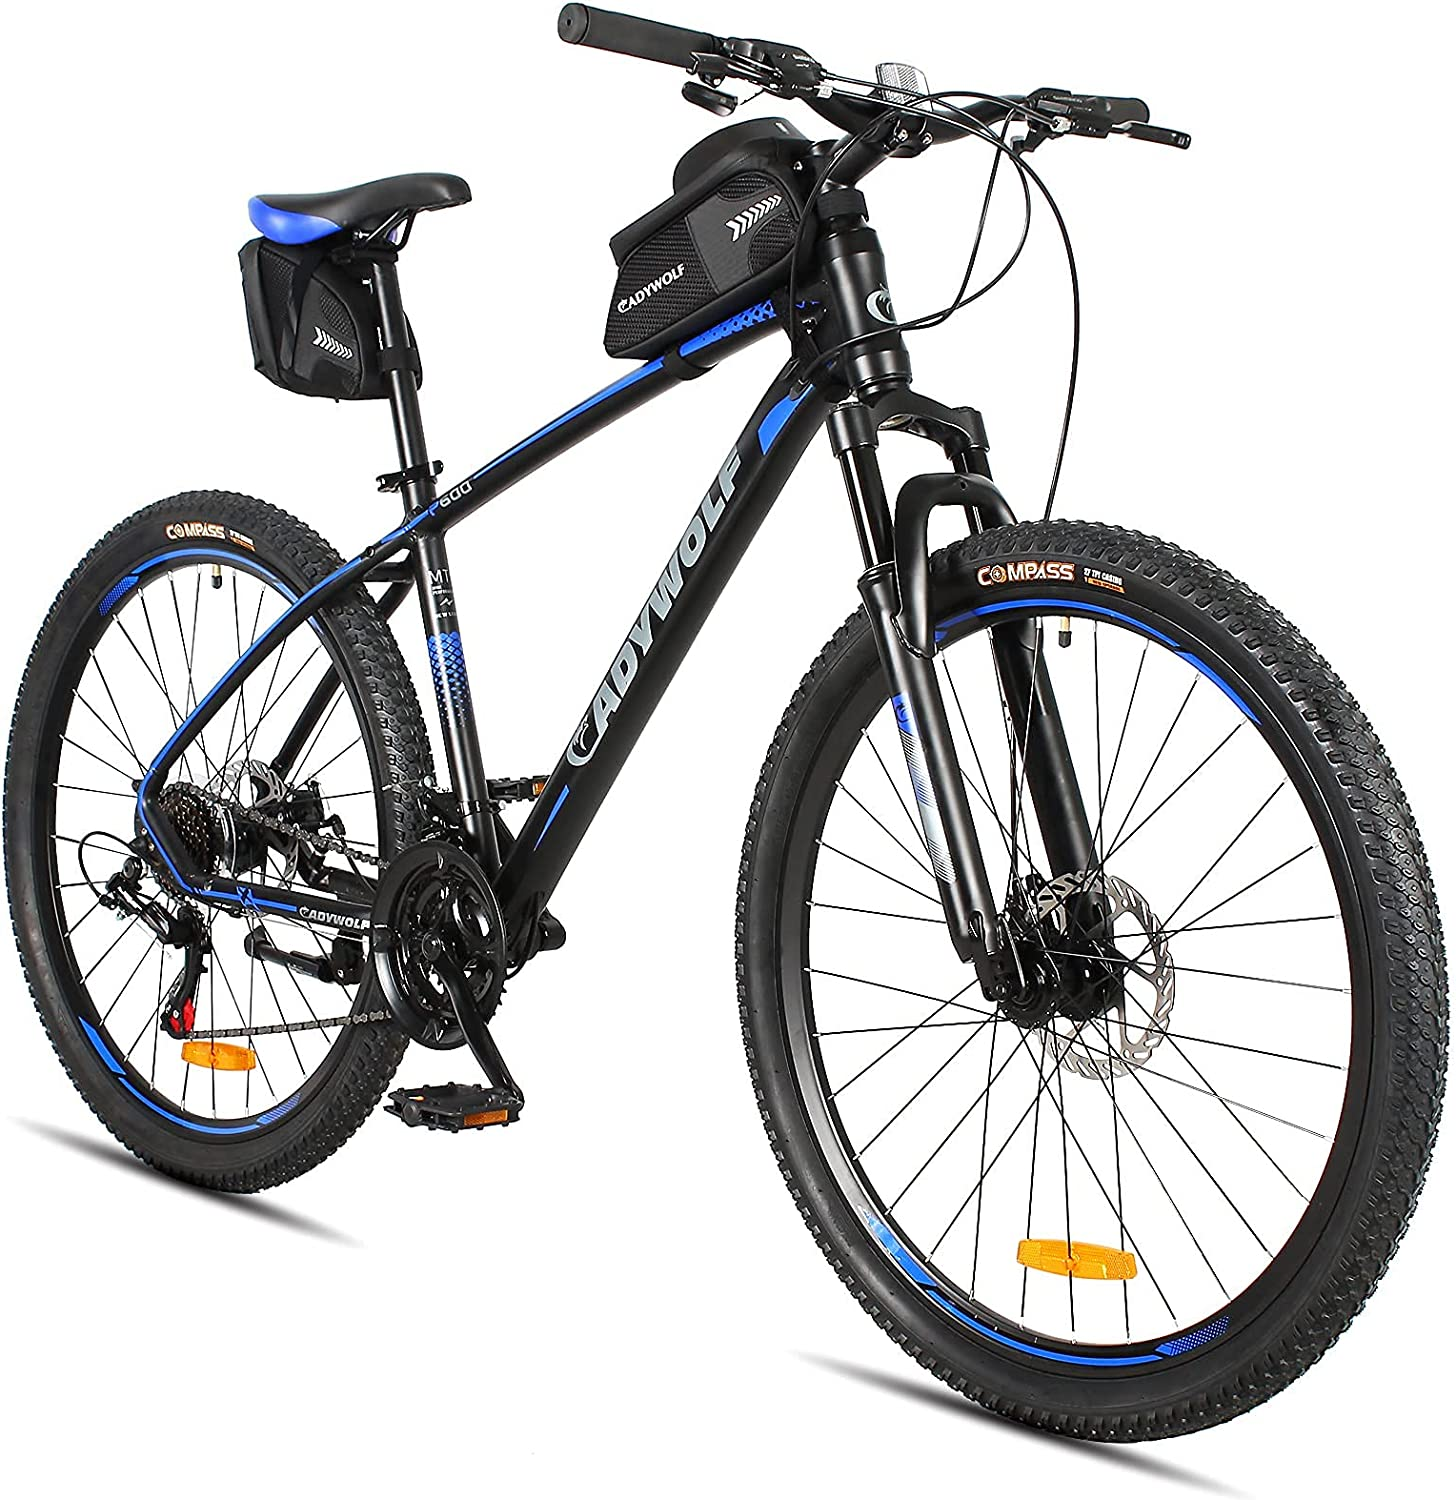 Mountain Bike Aluminum OFFicial mail order Alloy 27.5x17.5 Shimano Spe 21 Frame Same day shipping inch